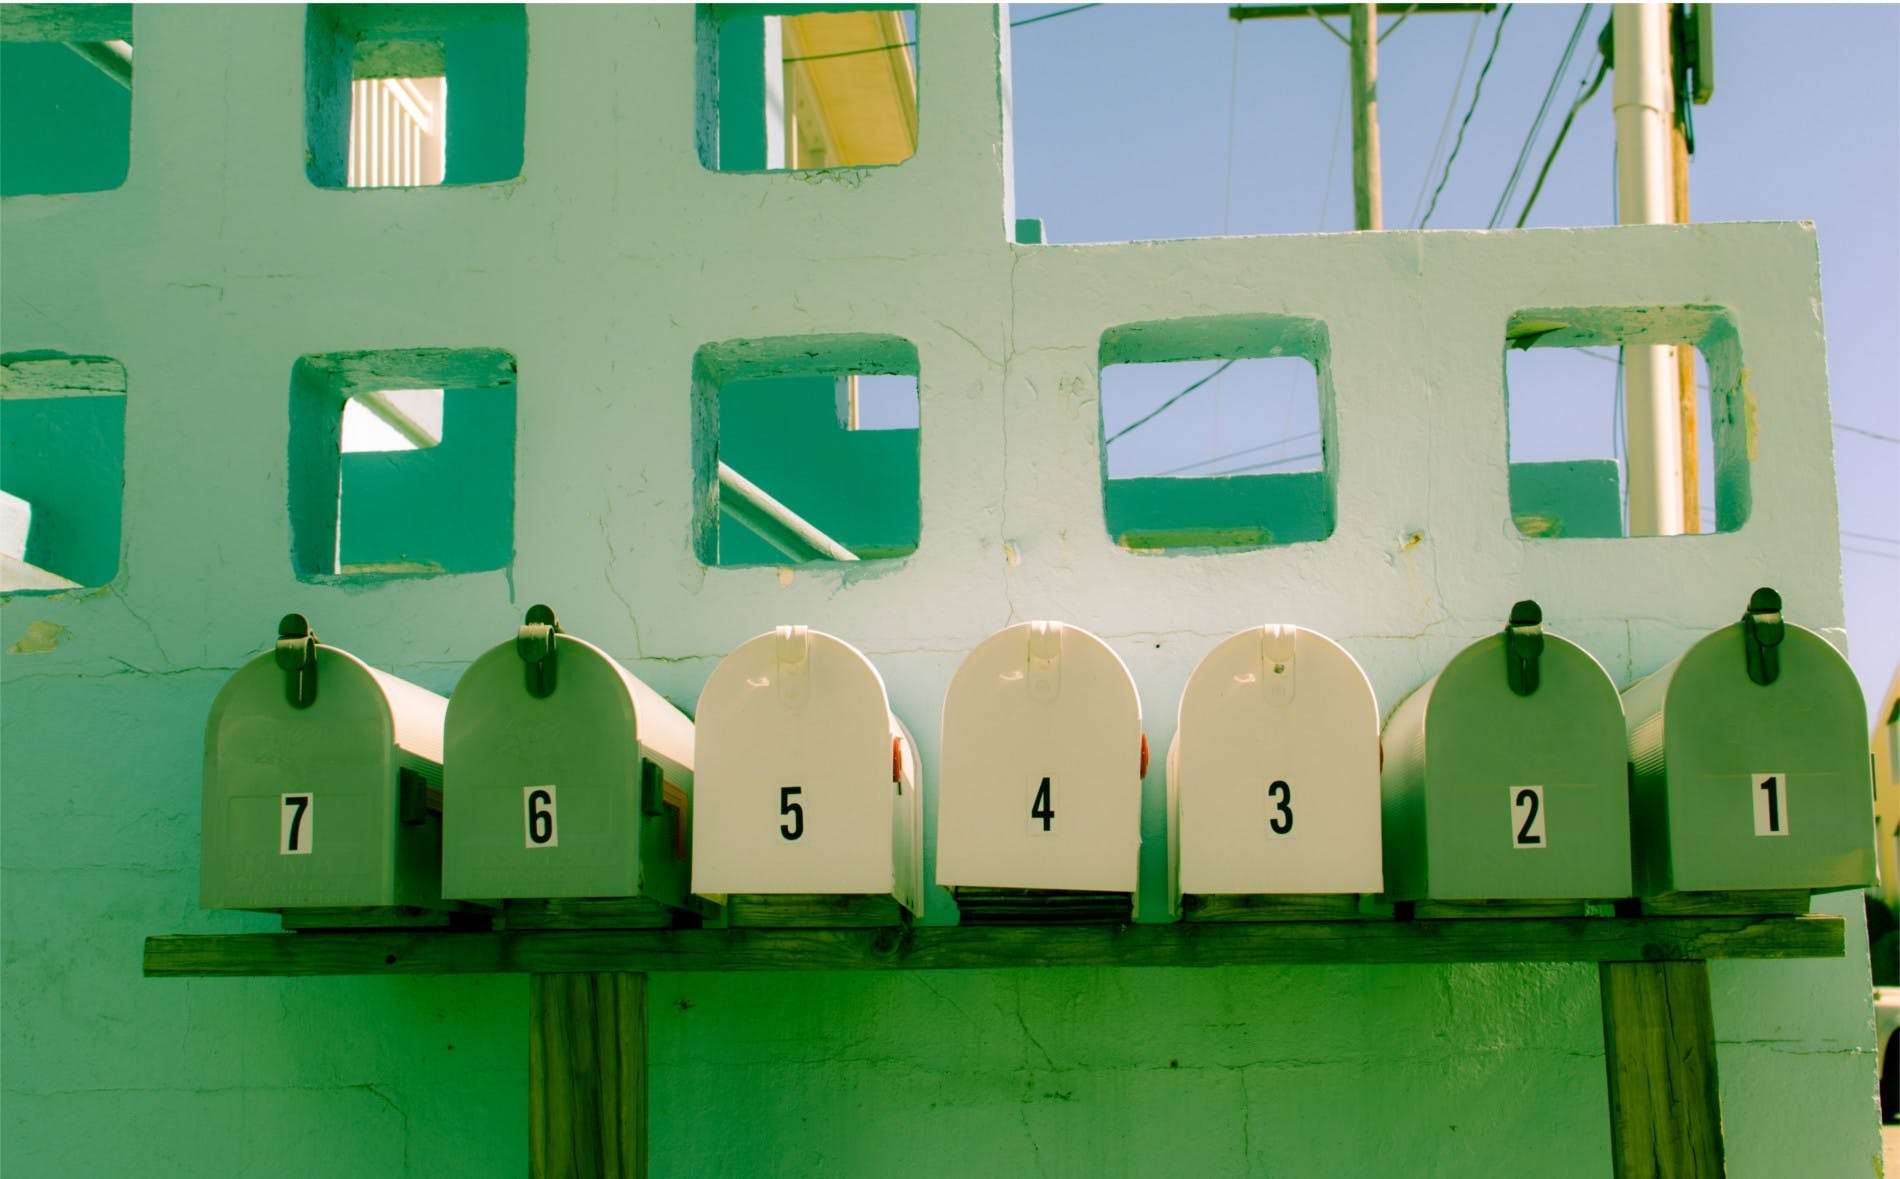 green row of mailboxes